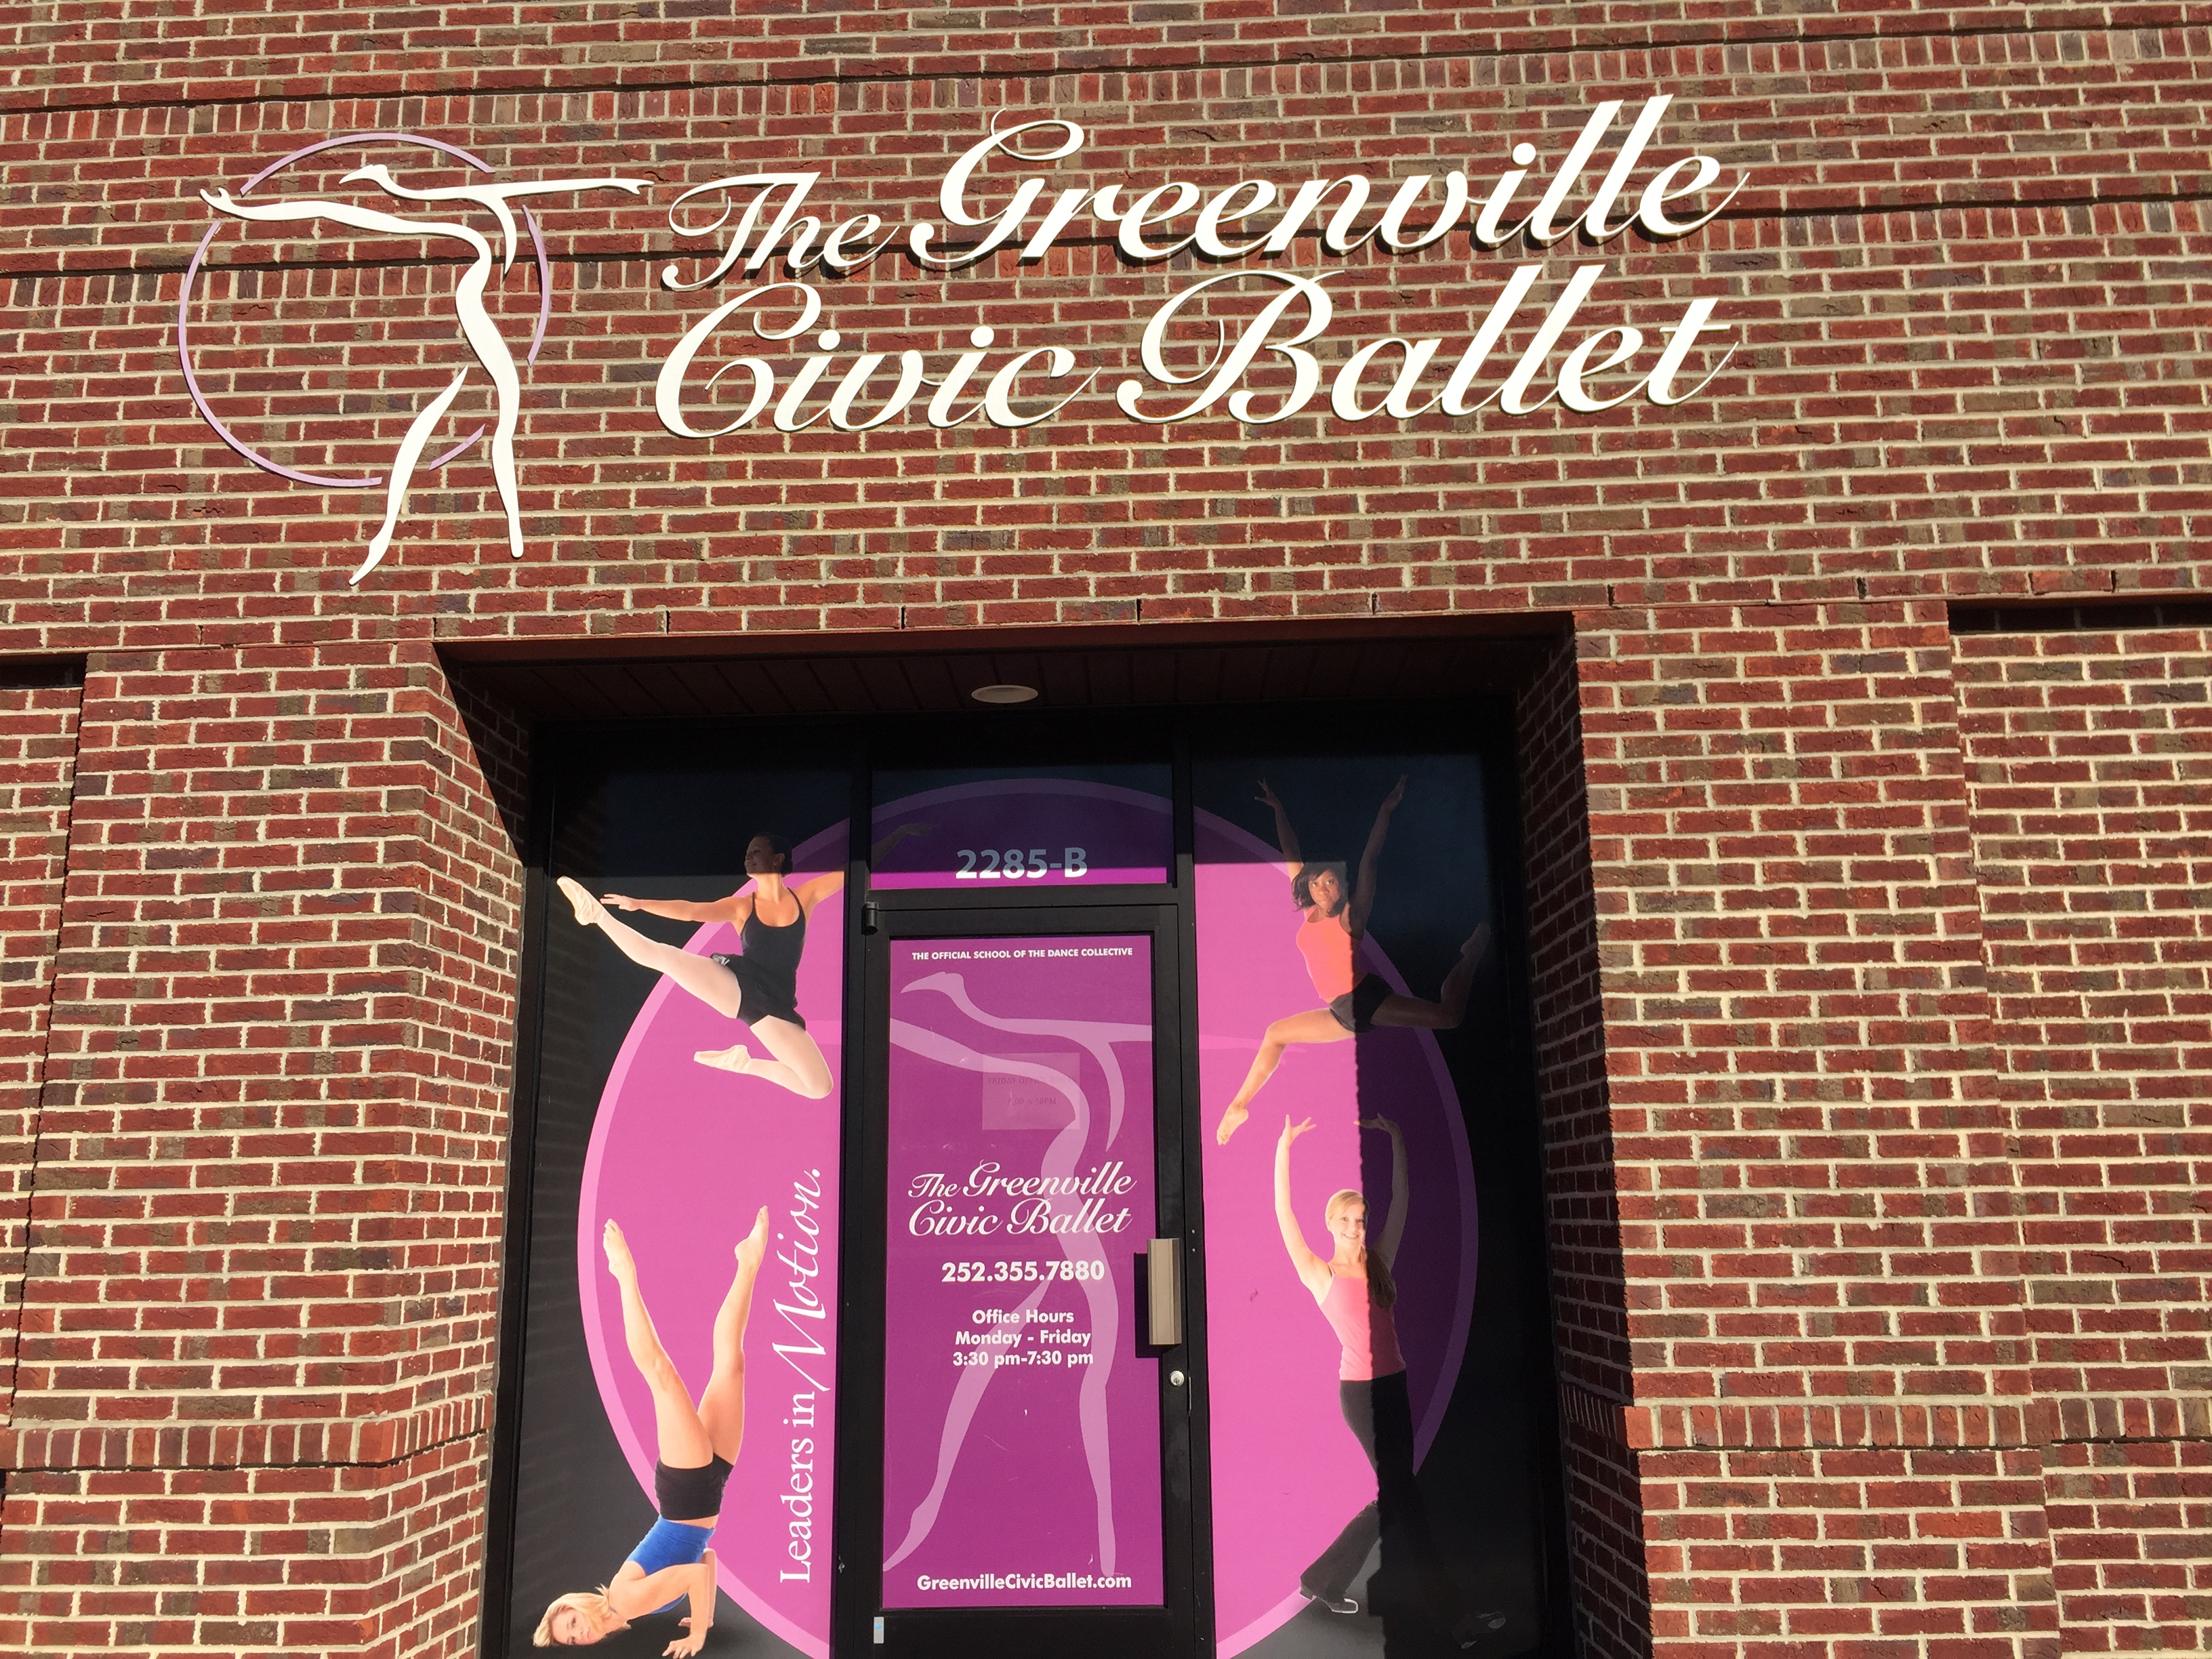 Greenville Civic Ballet